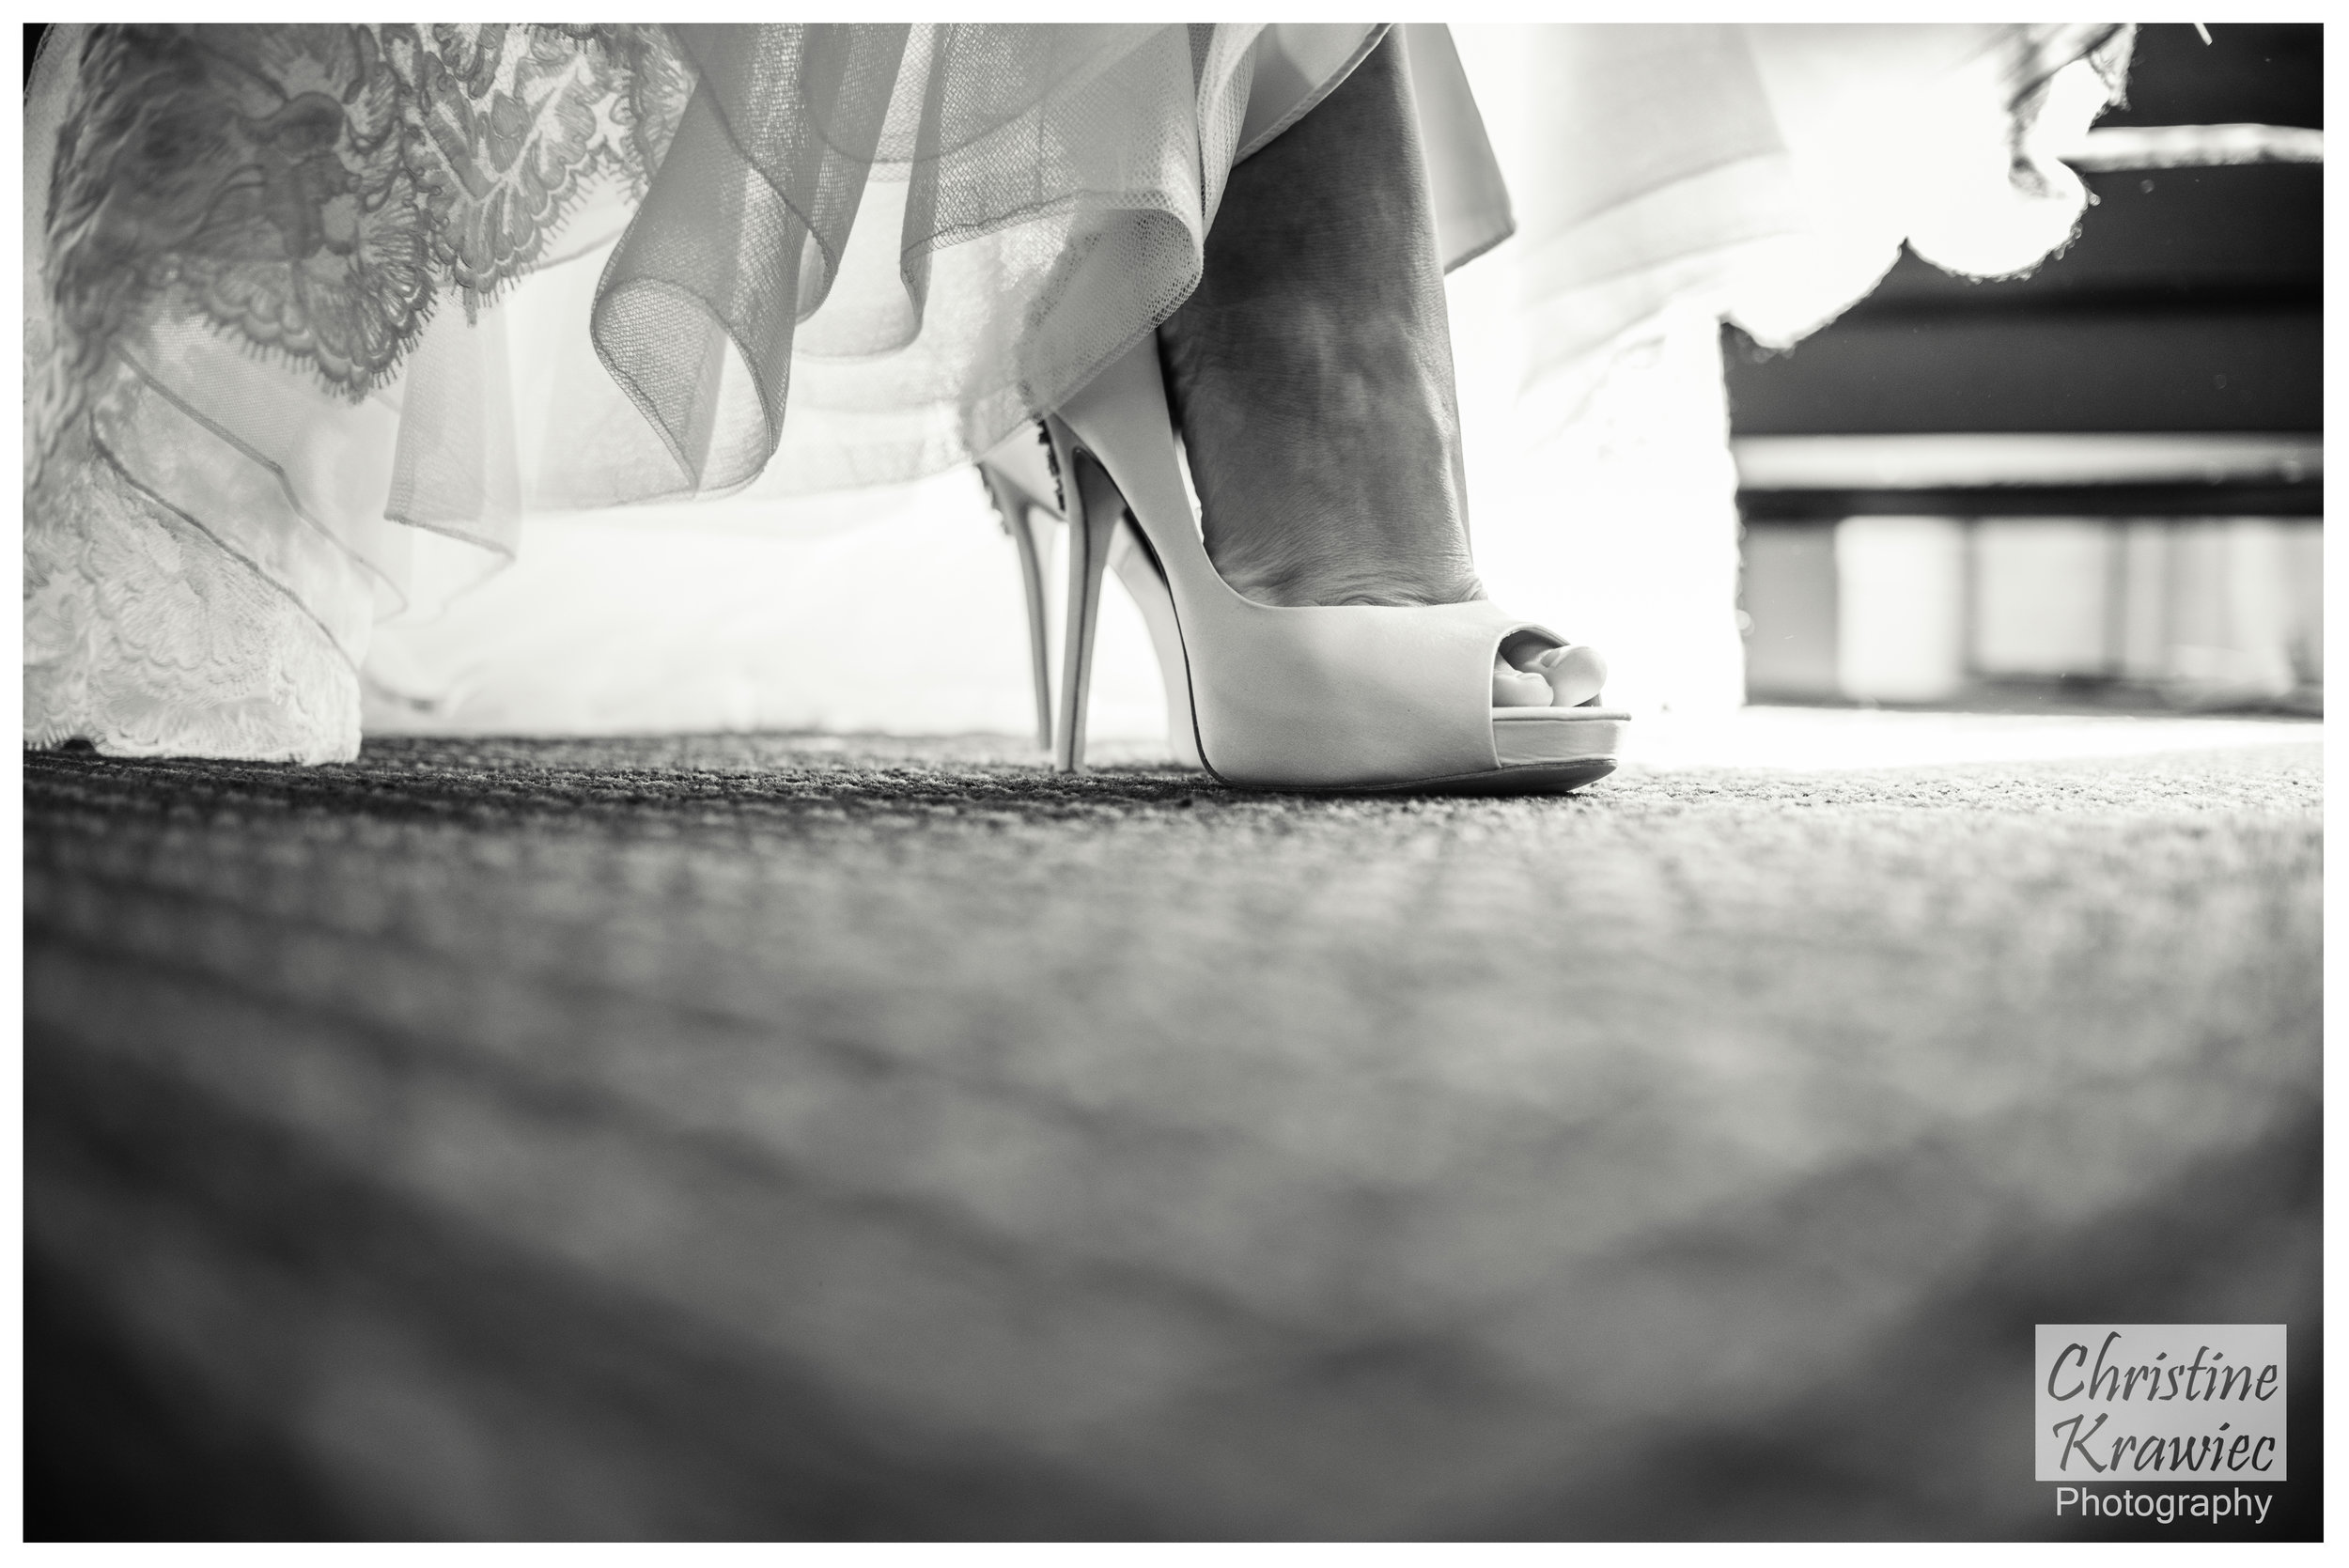 Last minute details while slipping on her wedding shoes